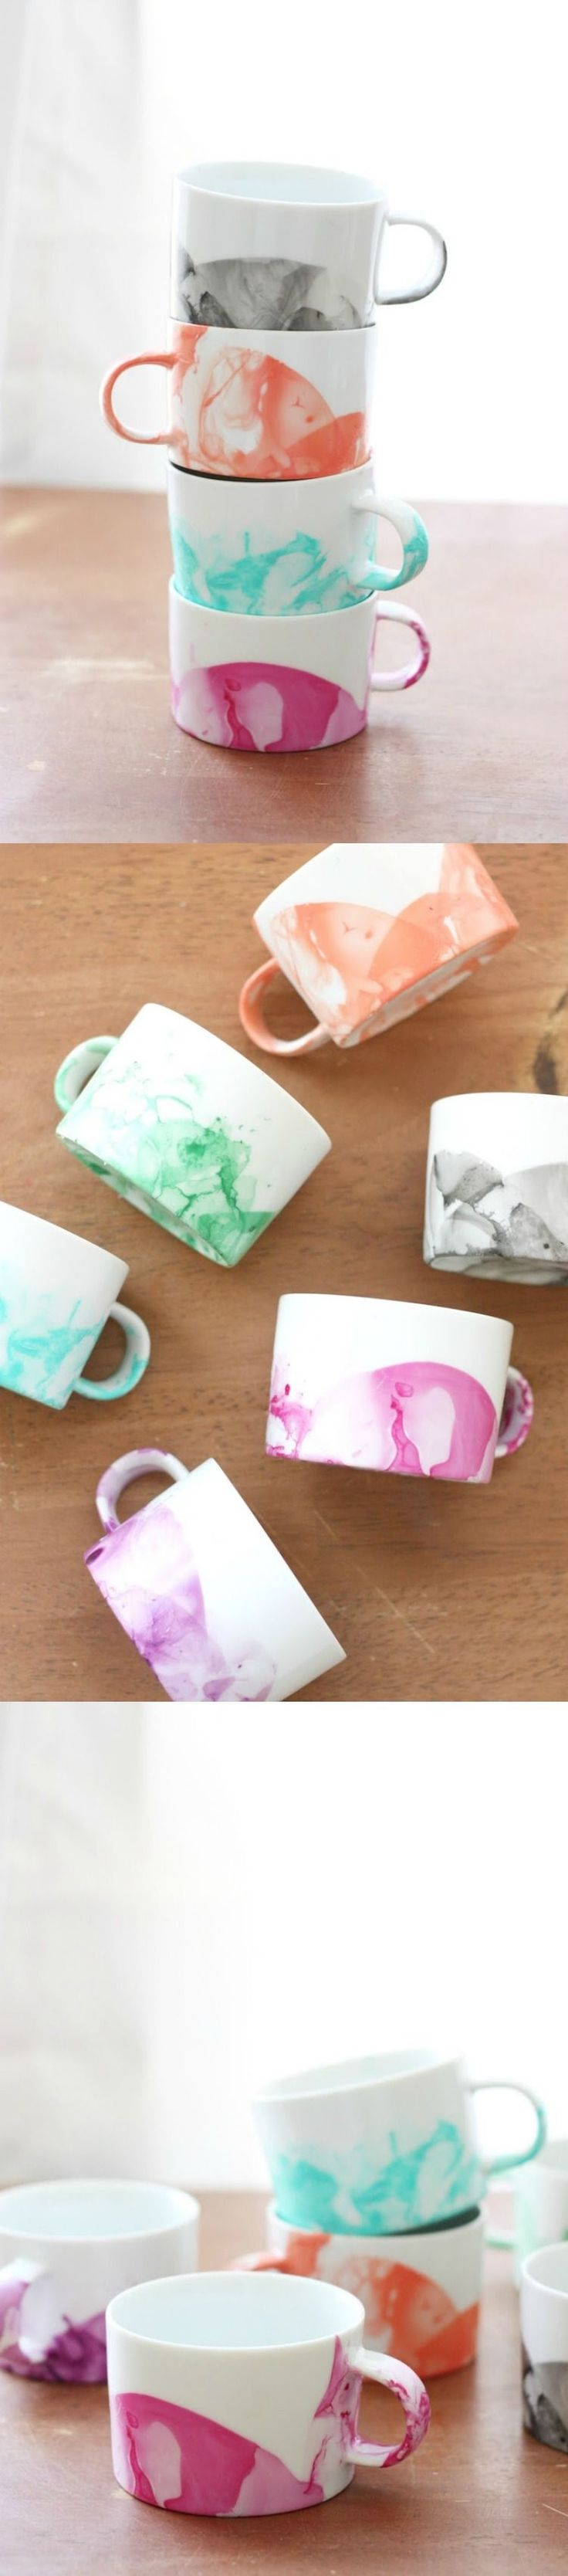 DIY Marble Mugs With Nail Polish | Diycandy